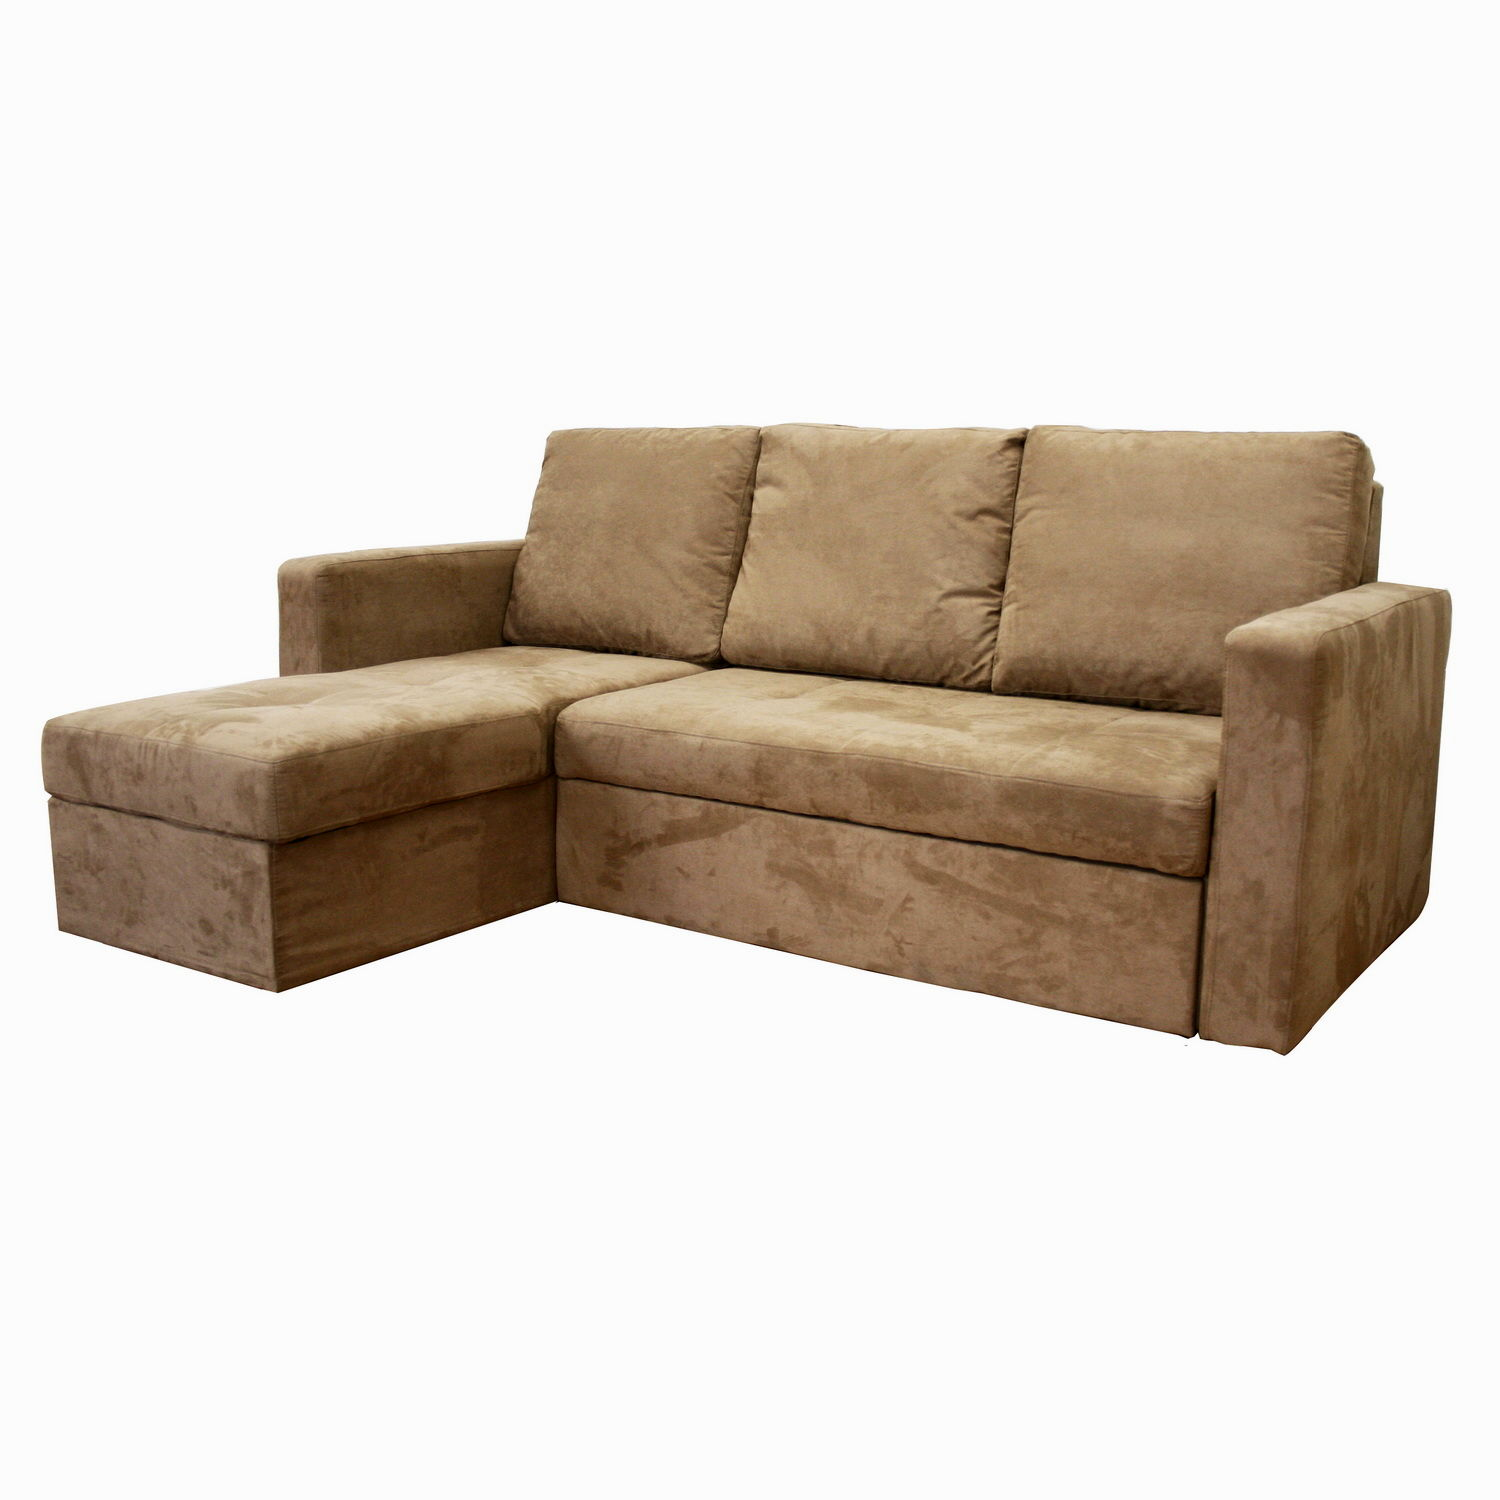 modern sleeper sofa with chaise picture-Fancy Sleeper sofa with Chaise Layout